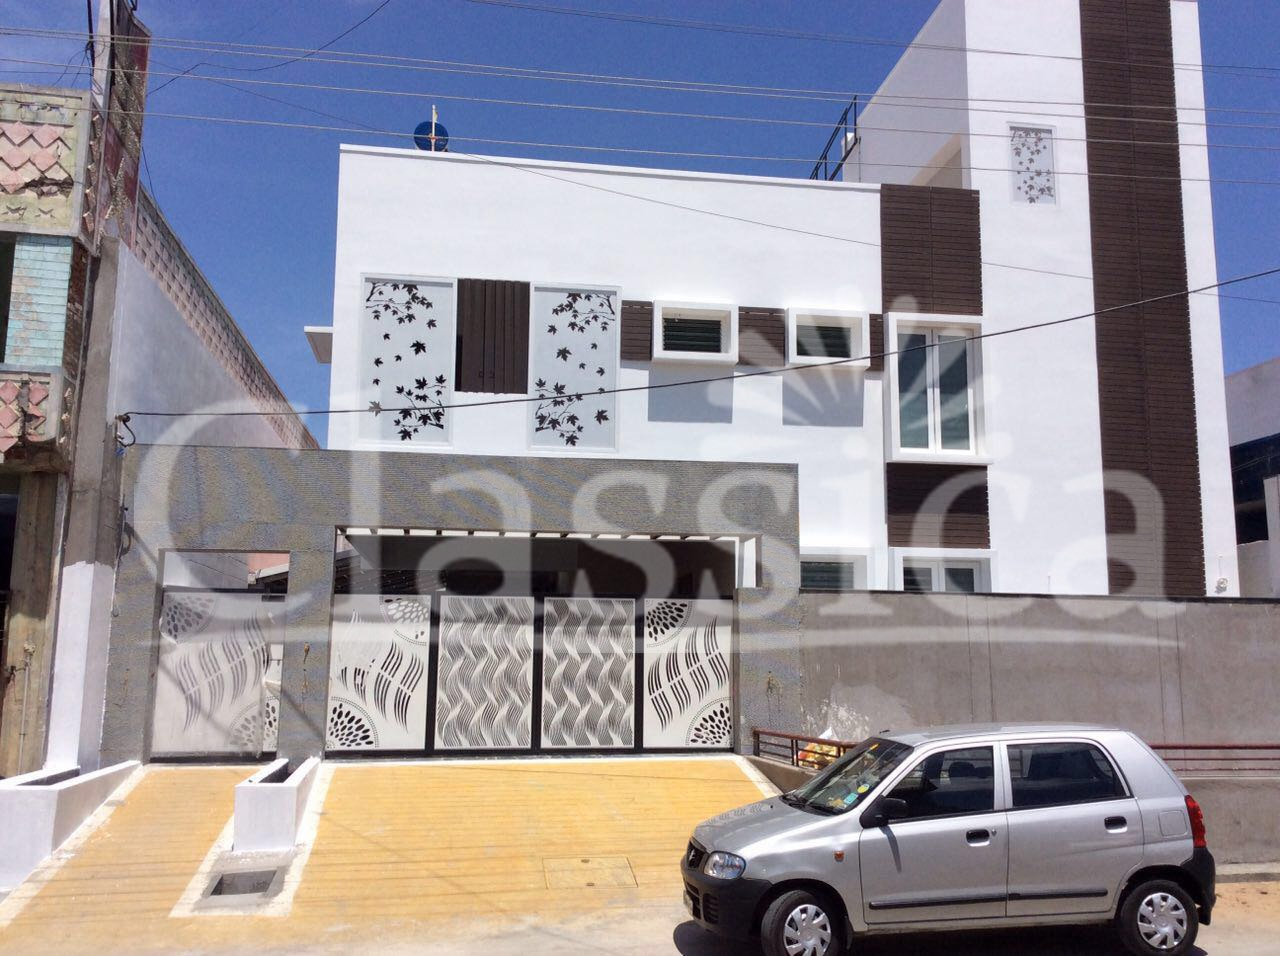 Proudly Presents: Best Architectural Laser Cut panels in Coimbatore Elevation Architectural Laser Cut panels In Coimbator , For More Details 9787332222